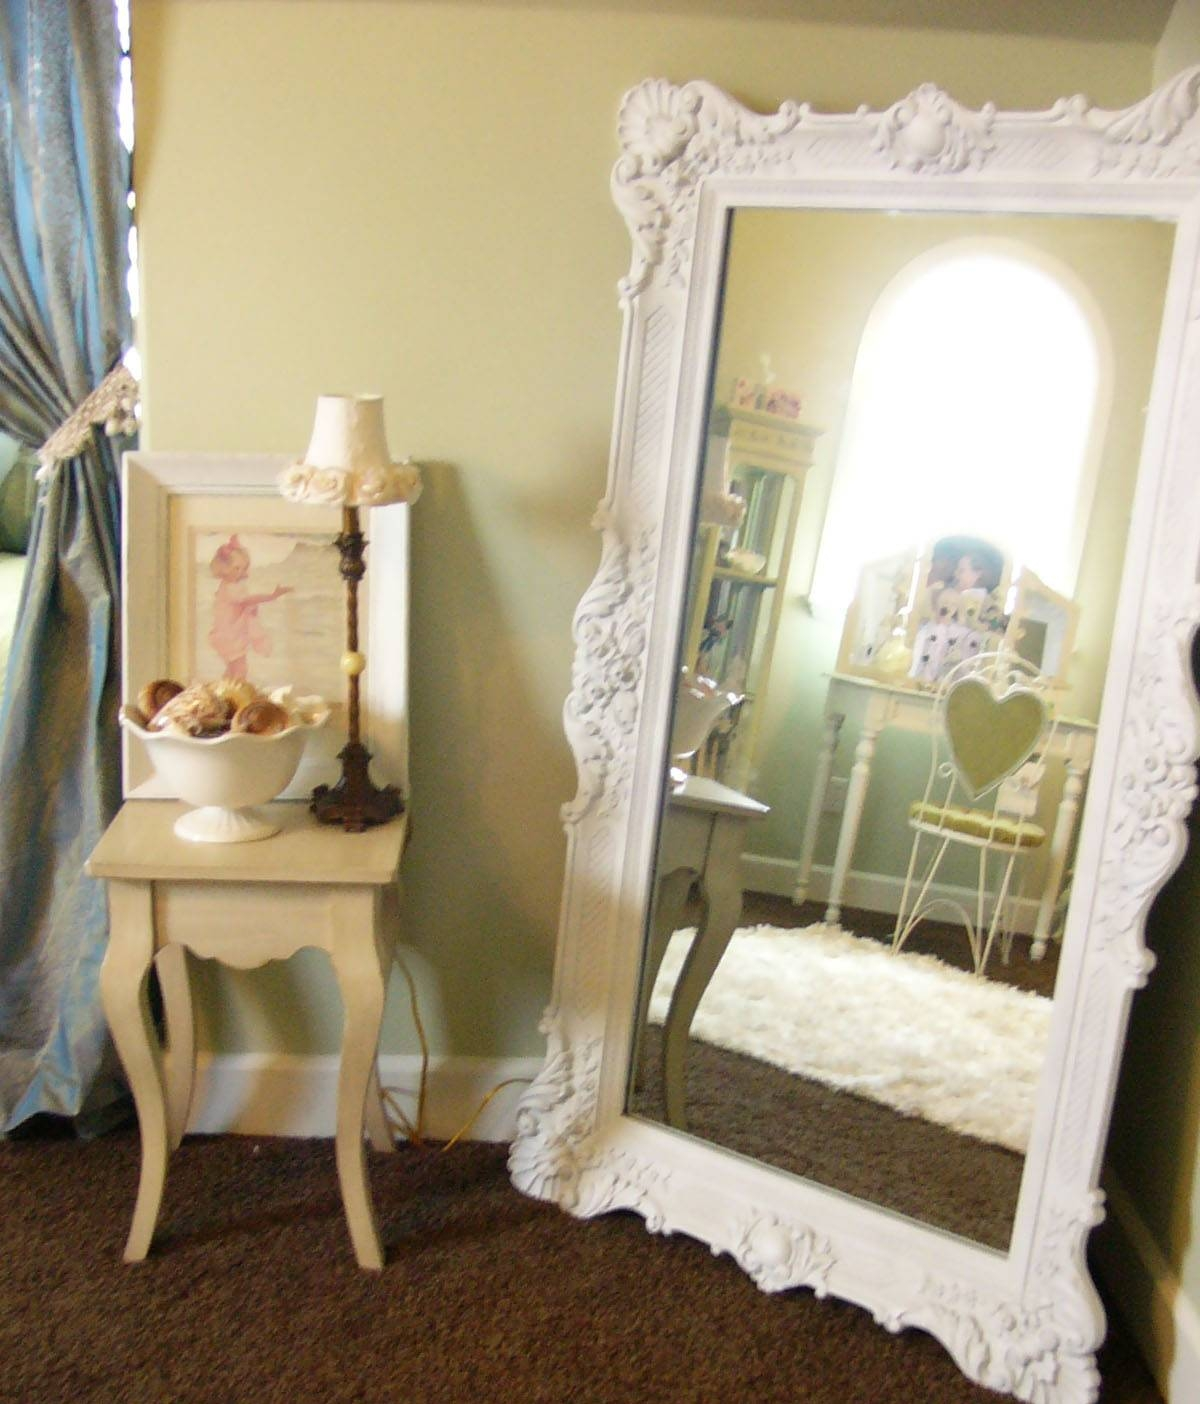 Full Length Mirror Free Standing | Vanity Decoration throughout Big Standing Mirrors (Image 11 of 15)